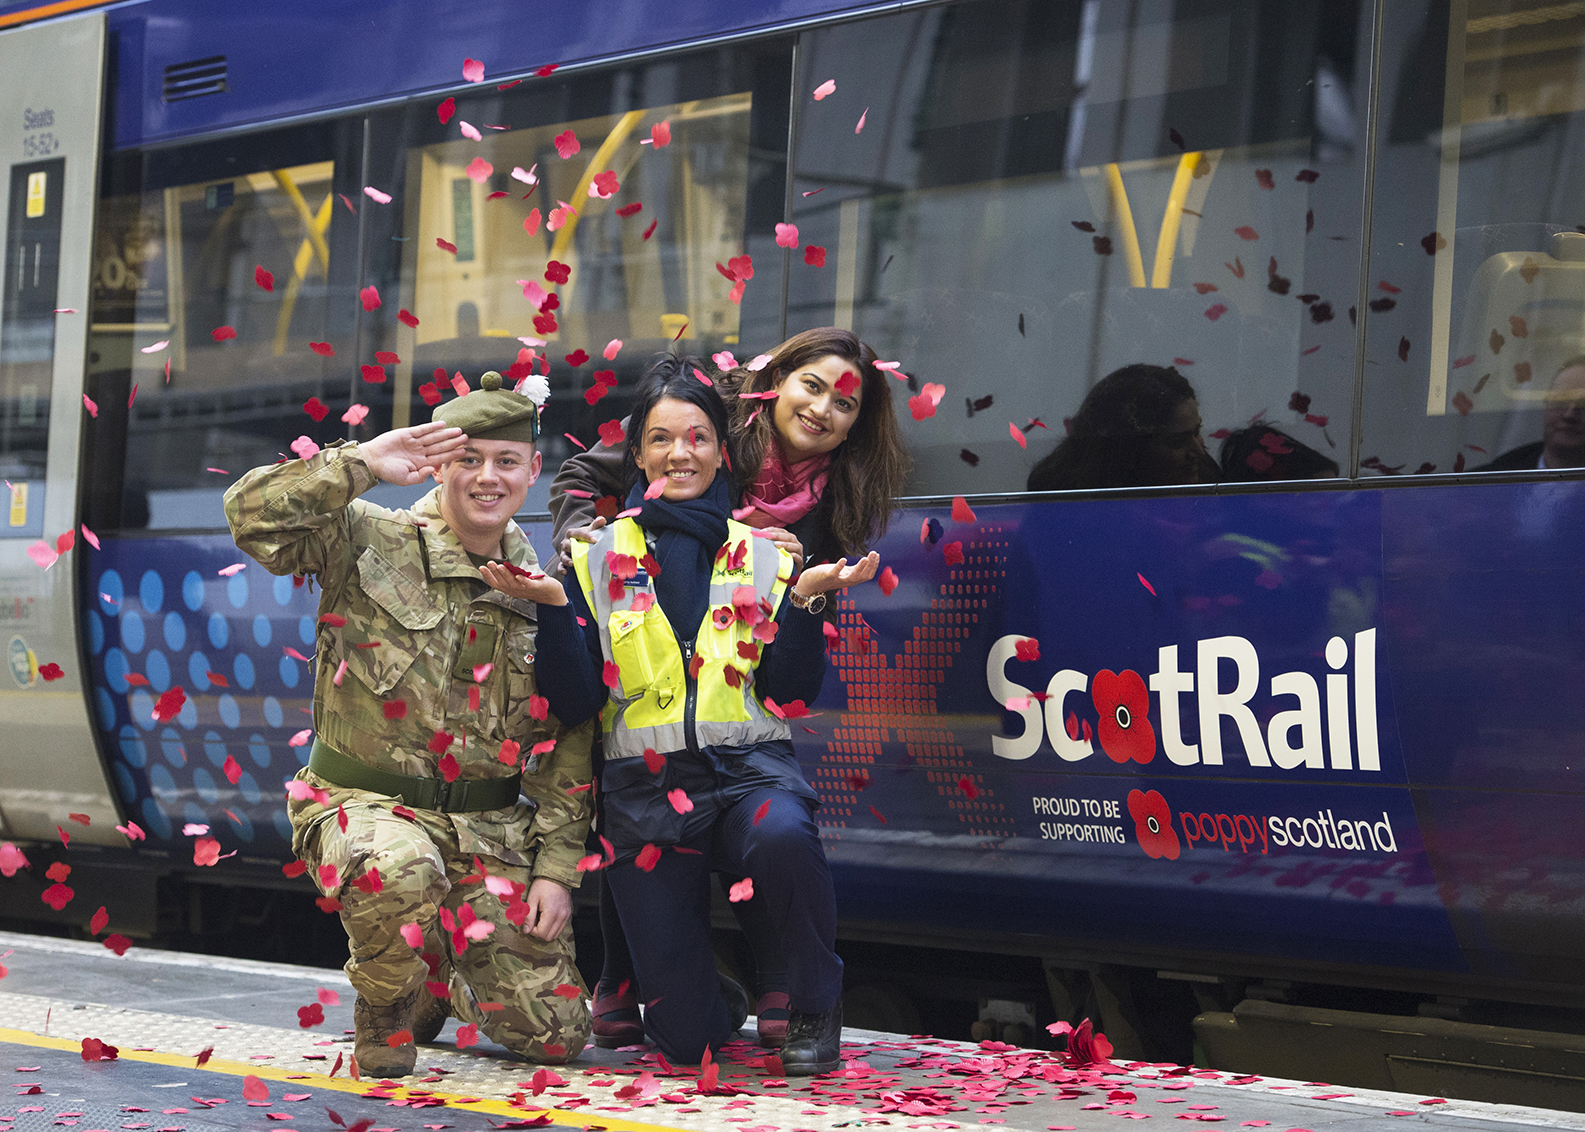 06/11/17 - 17110601 - ABELLIO SCOTRAIL  QUEEN STREET STATION - GLASGOW  Poppy Trains Launch  Fusilier Stewart Casey, Kelly Walker, Sayid Gaufran